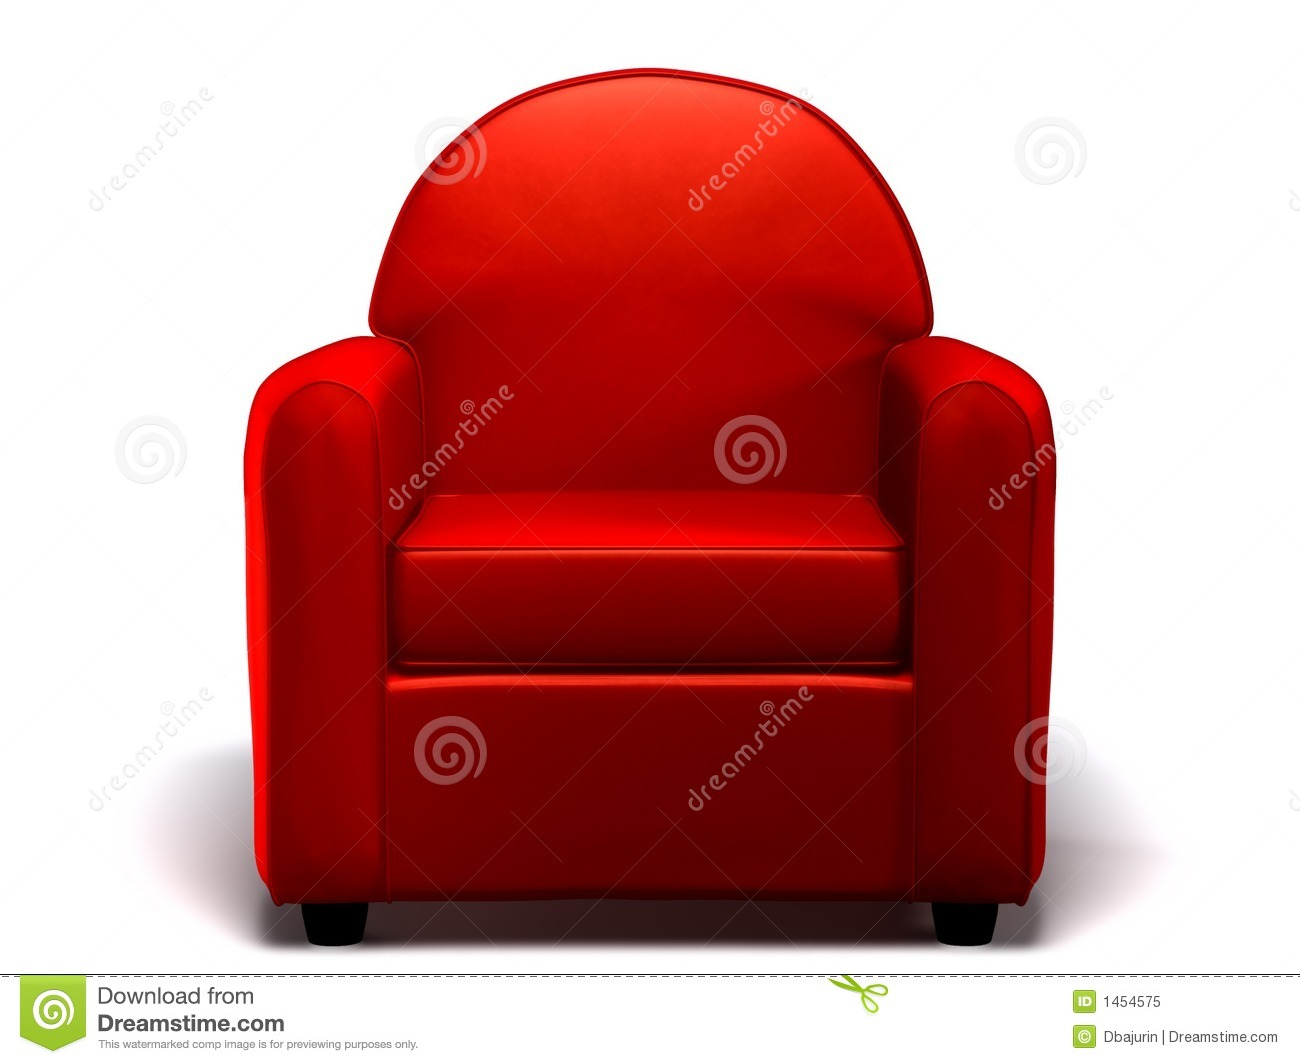 2 seater love chair red kitchen chairs single seat sofa stock illustration. image of executive - 1454575